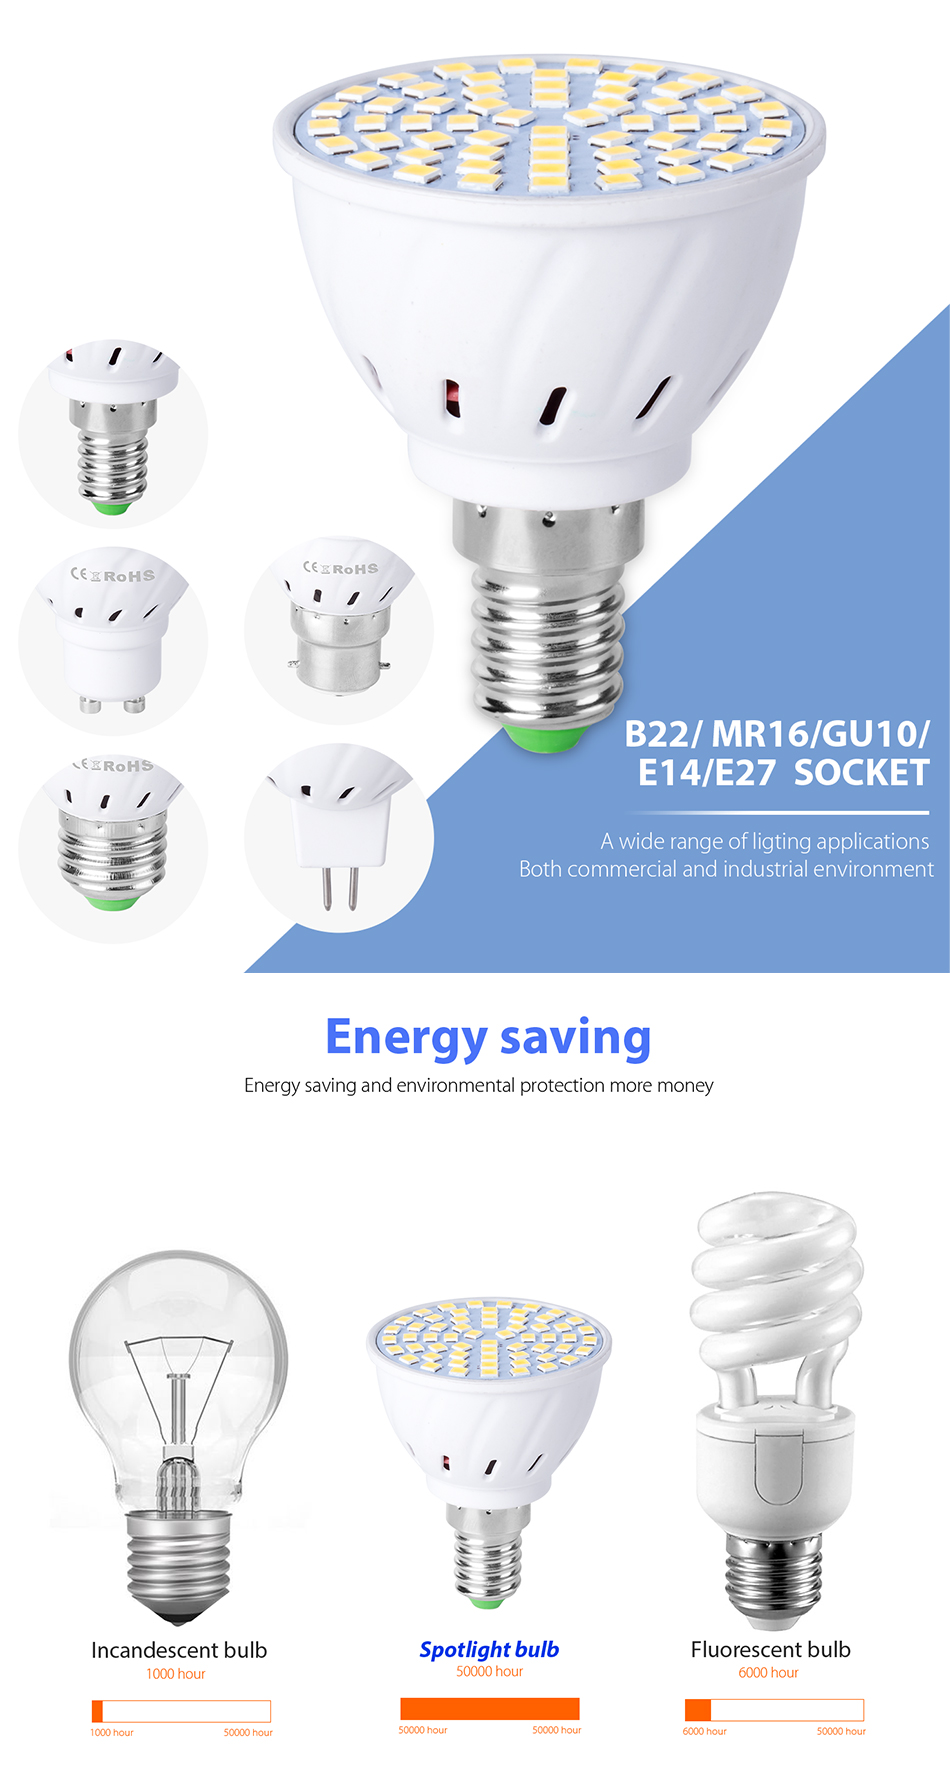 Gu10 Led E27 Lampada E14 220v 230v Led Mr16 B22 Corn Lamp Energy Saving Spot Light 4w 6w 8w Kitchen Home Bulb 48 60 80leds Ampul Fancy Colours Lights & Lighting Led Bulbs & Tubes